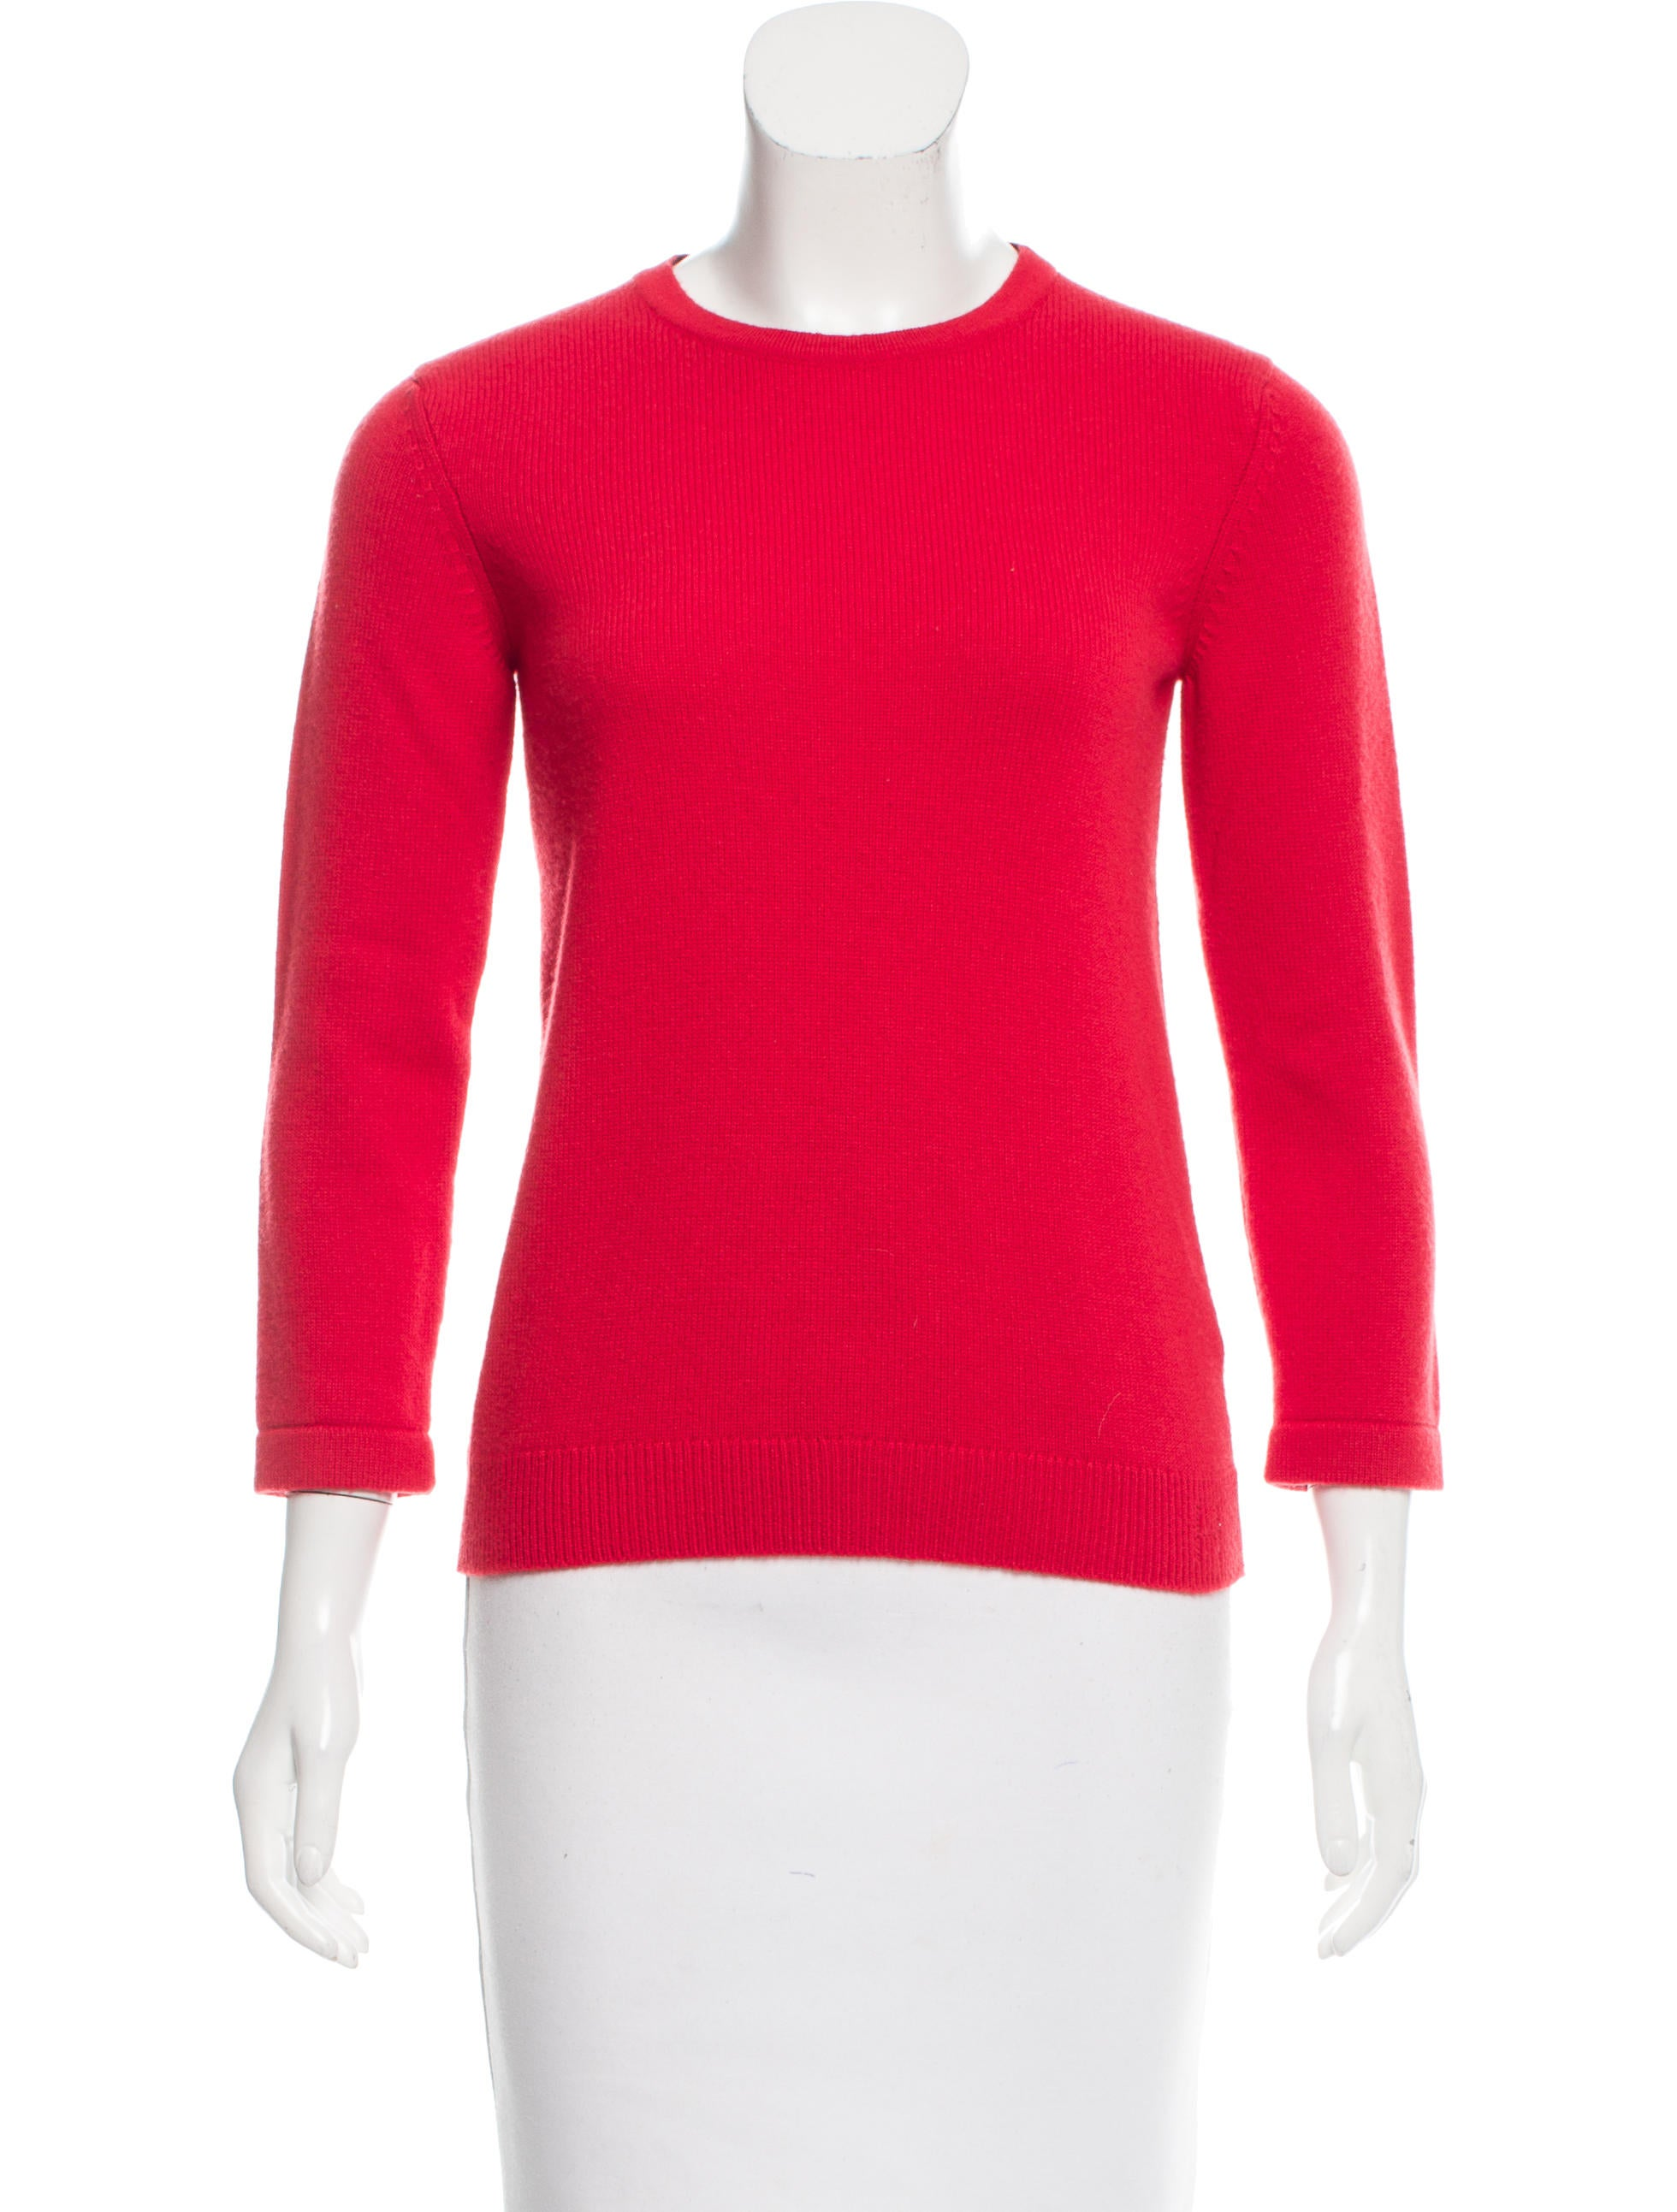 Hermes Cashmere Knit Sweater - Clothing - HER98373 The RealReal